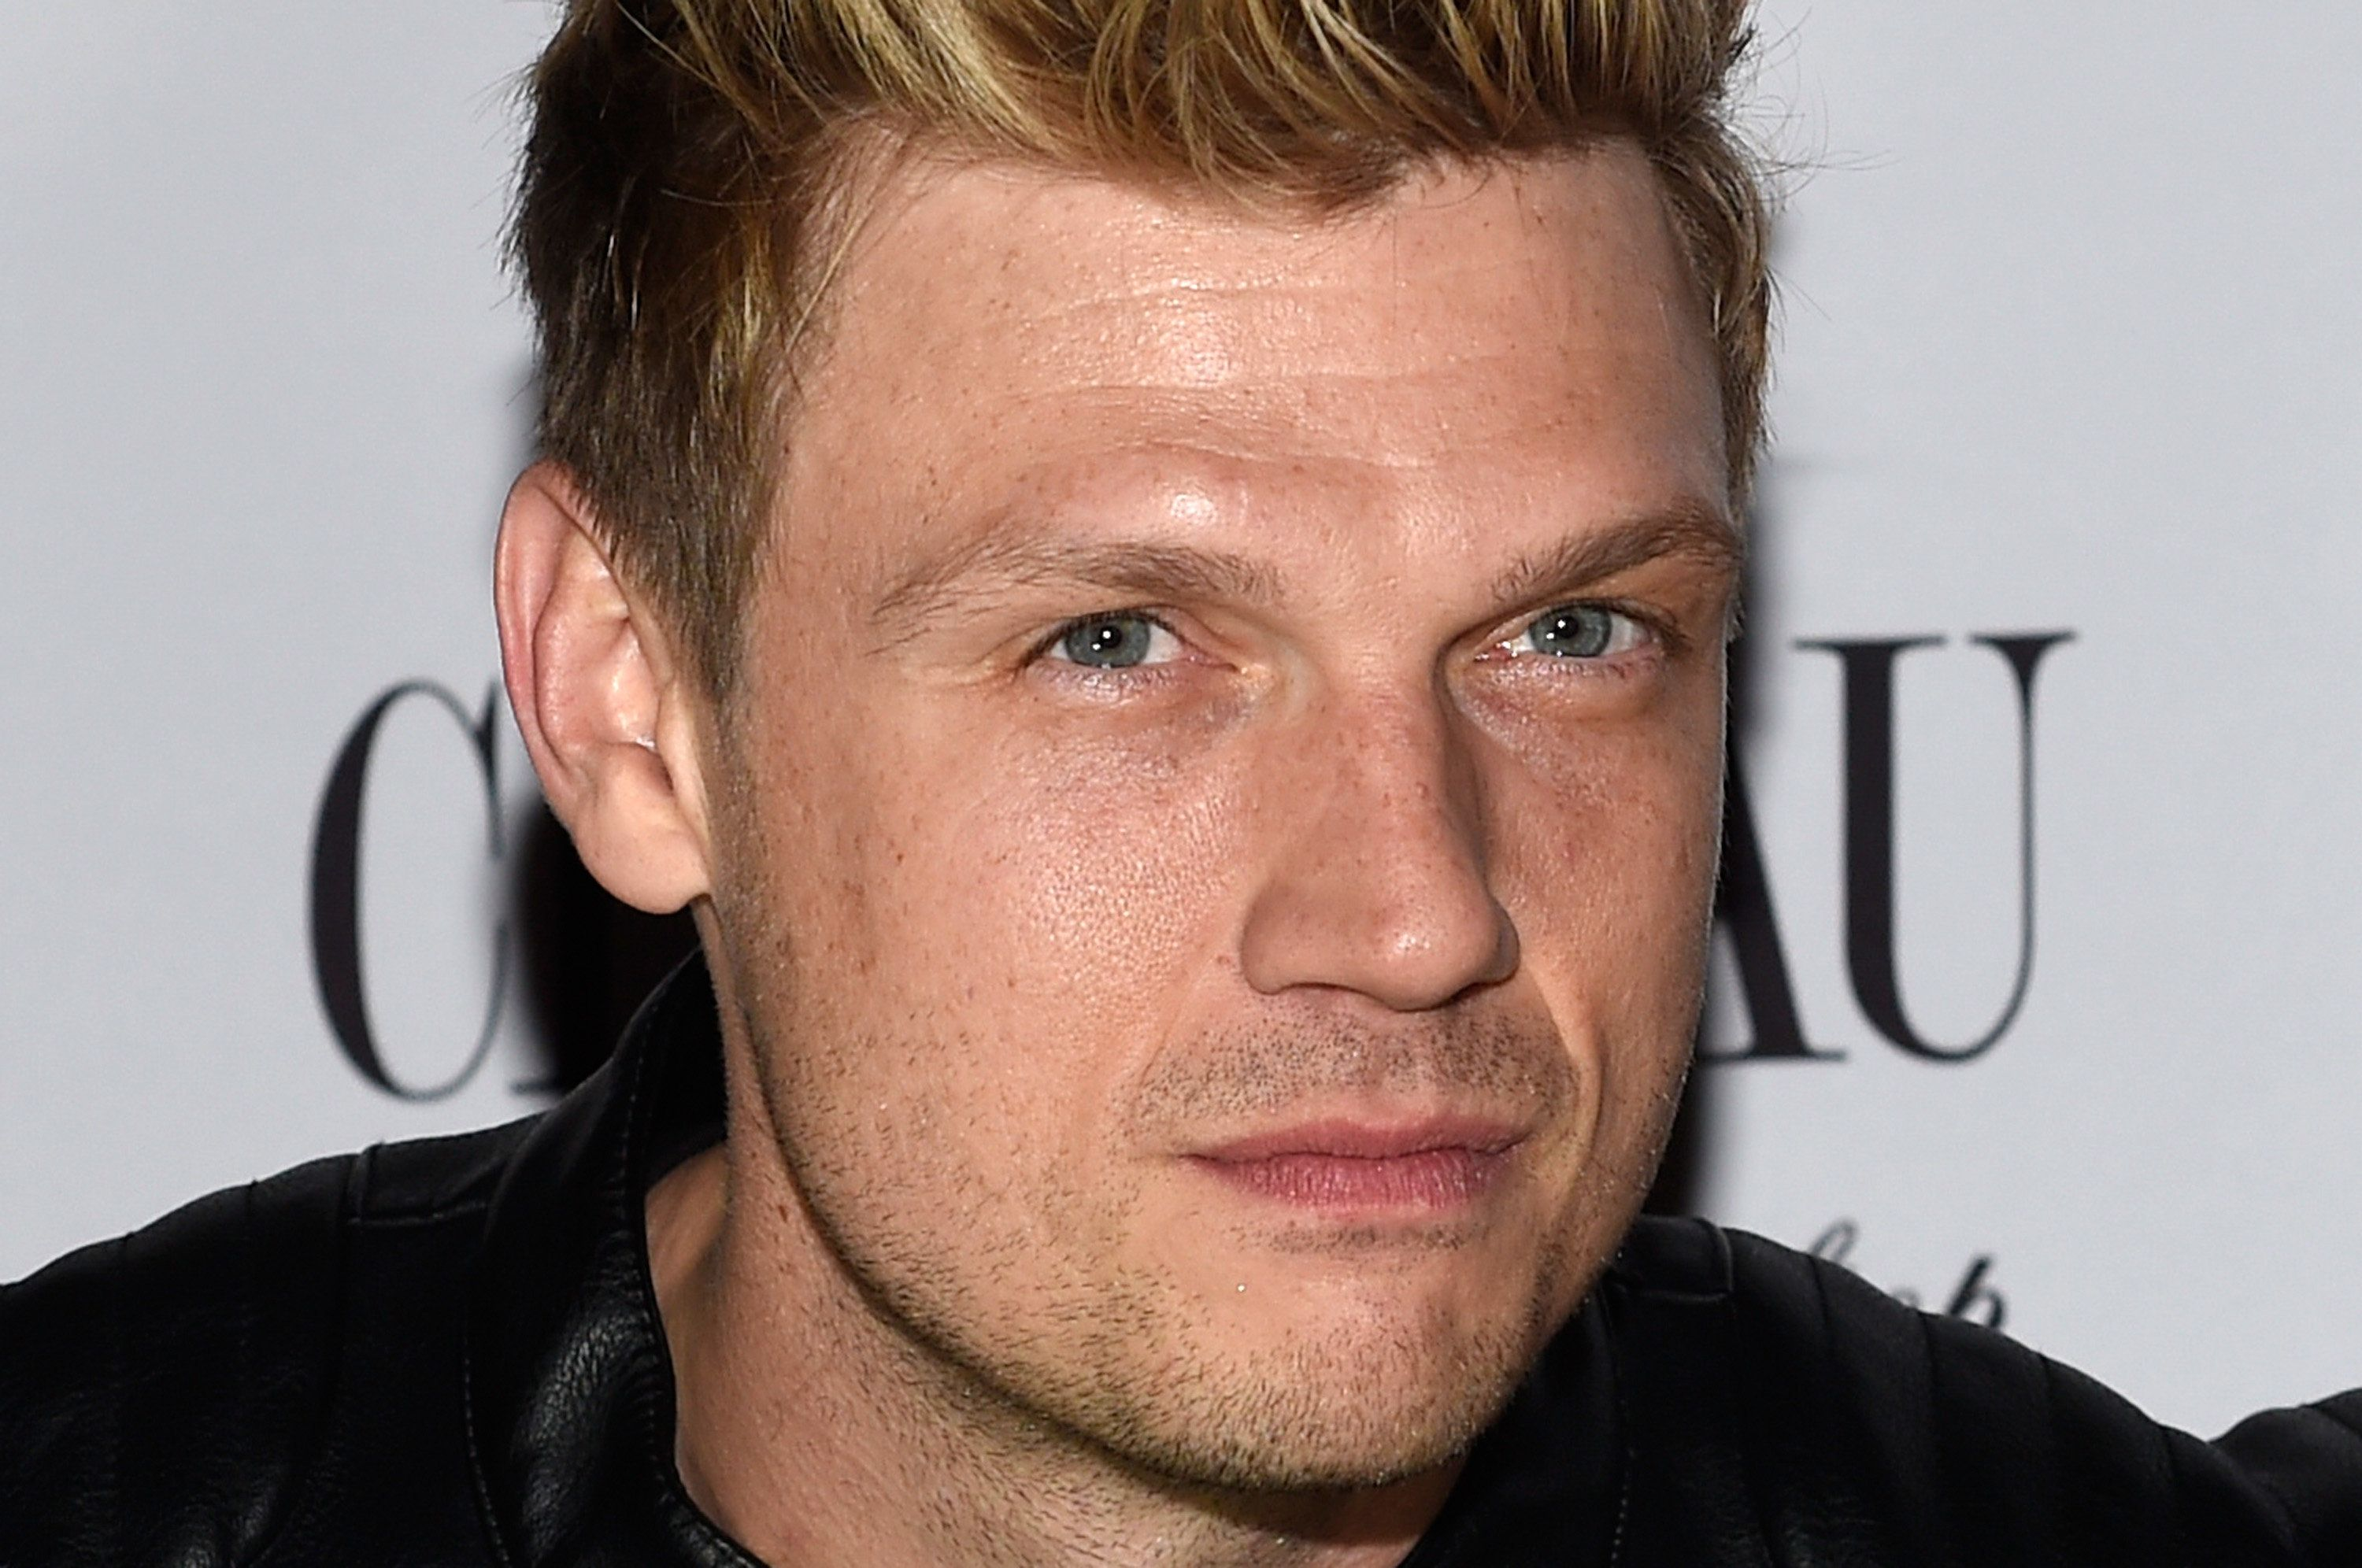 LAS VEGAS, NV - MARCH 02:  Singer Nick Carter of the Backstreet Boys attends the after party of the debut of the group's residency 'Larger Than Life' at the Chateau Nightclub & Rooftop at the Paris Las Vegas on March 2, 2017 in Las Vegas, Nevada.  (Photo by David Becker/Getty Images)